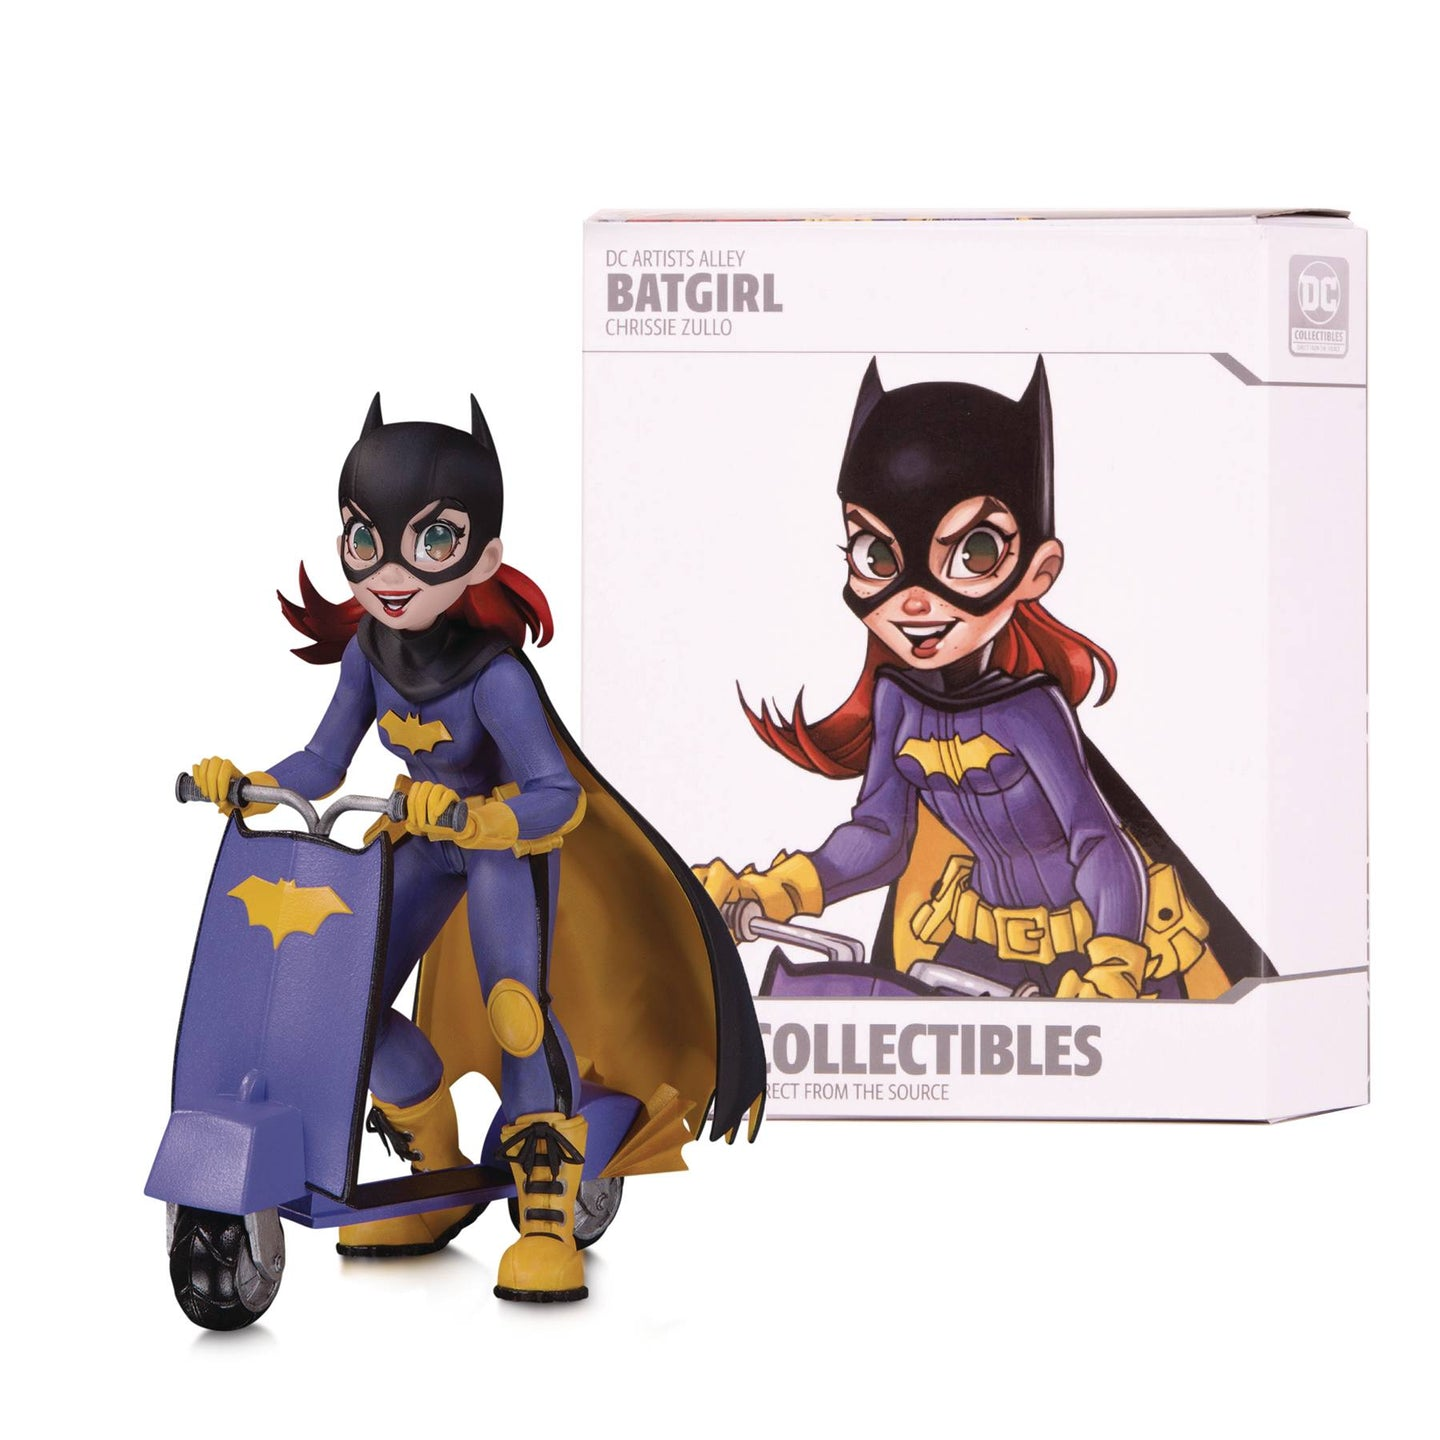 DC Artists Alley Batgirl By Zullo 7 Inch Color Vinyl Fig